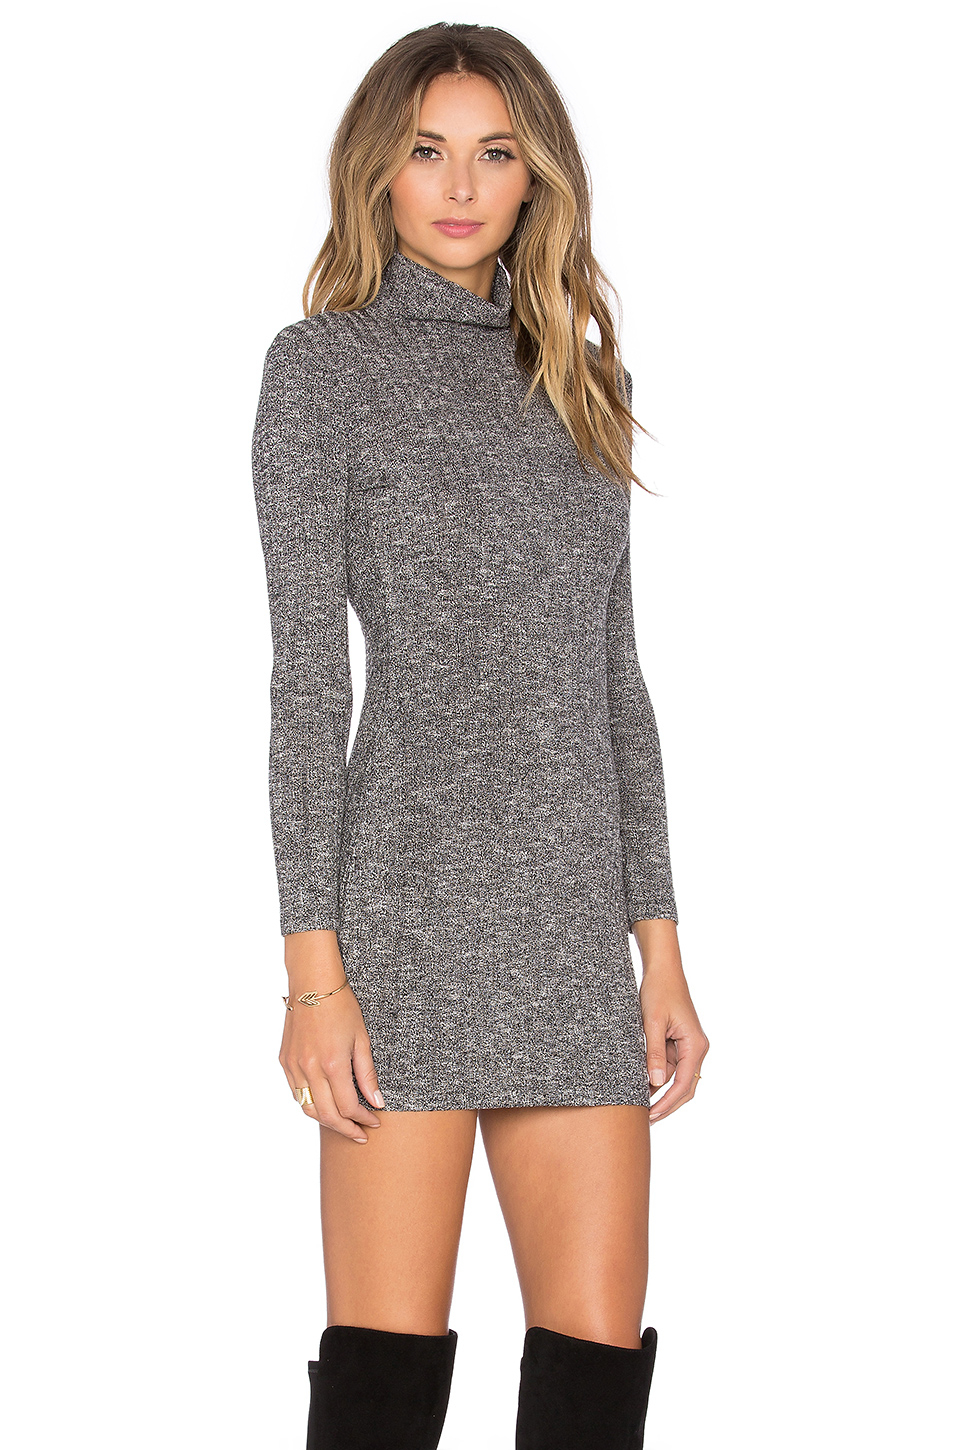 Capulet Long Sleeve Turtleneck Sweater Dress in Gray | Lyst